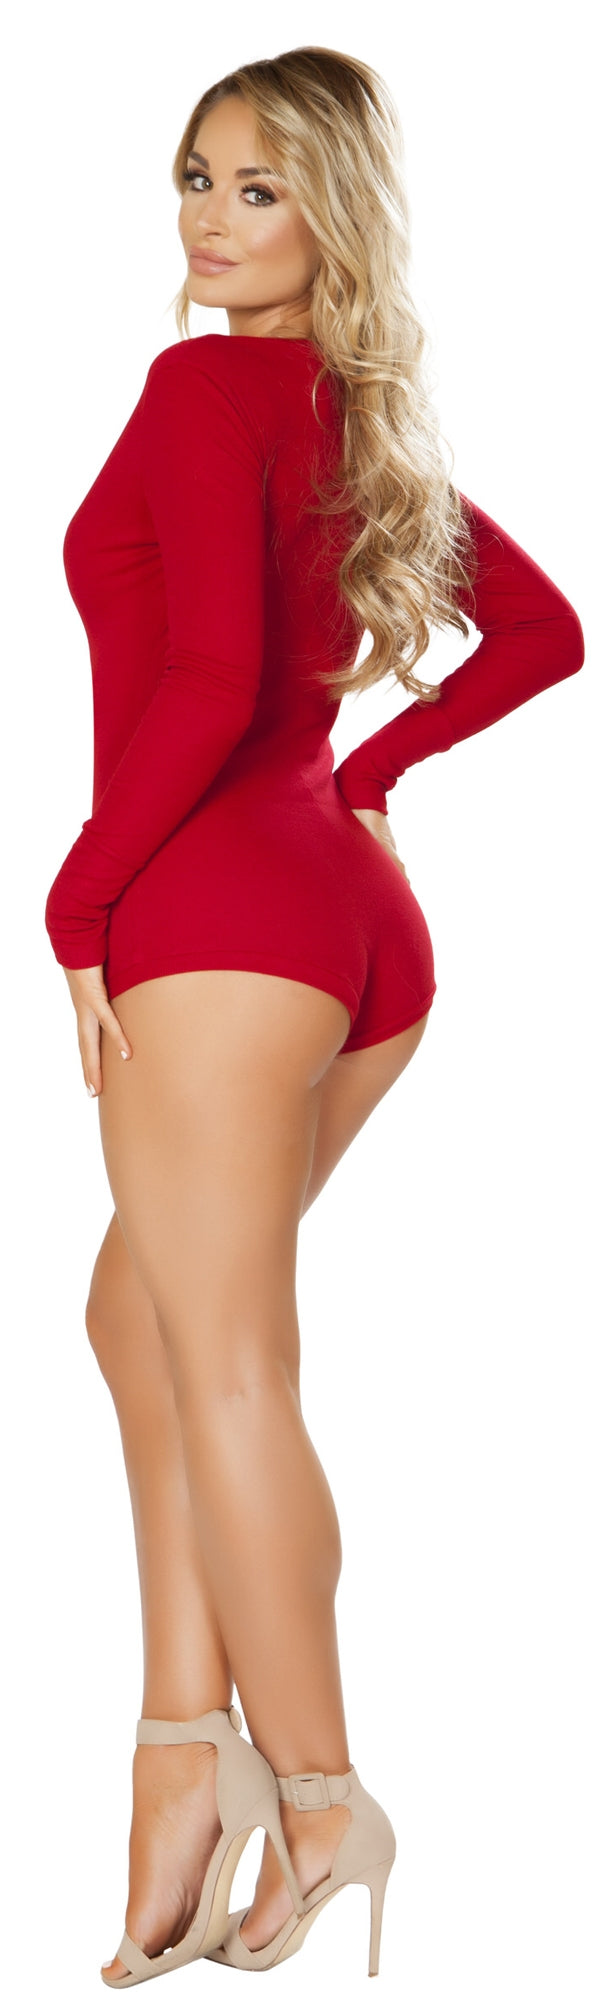 RM-LI211 Cozy and Comfy Sweater Romper burgundy back